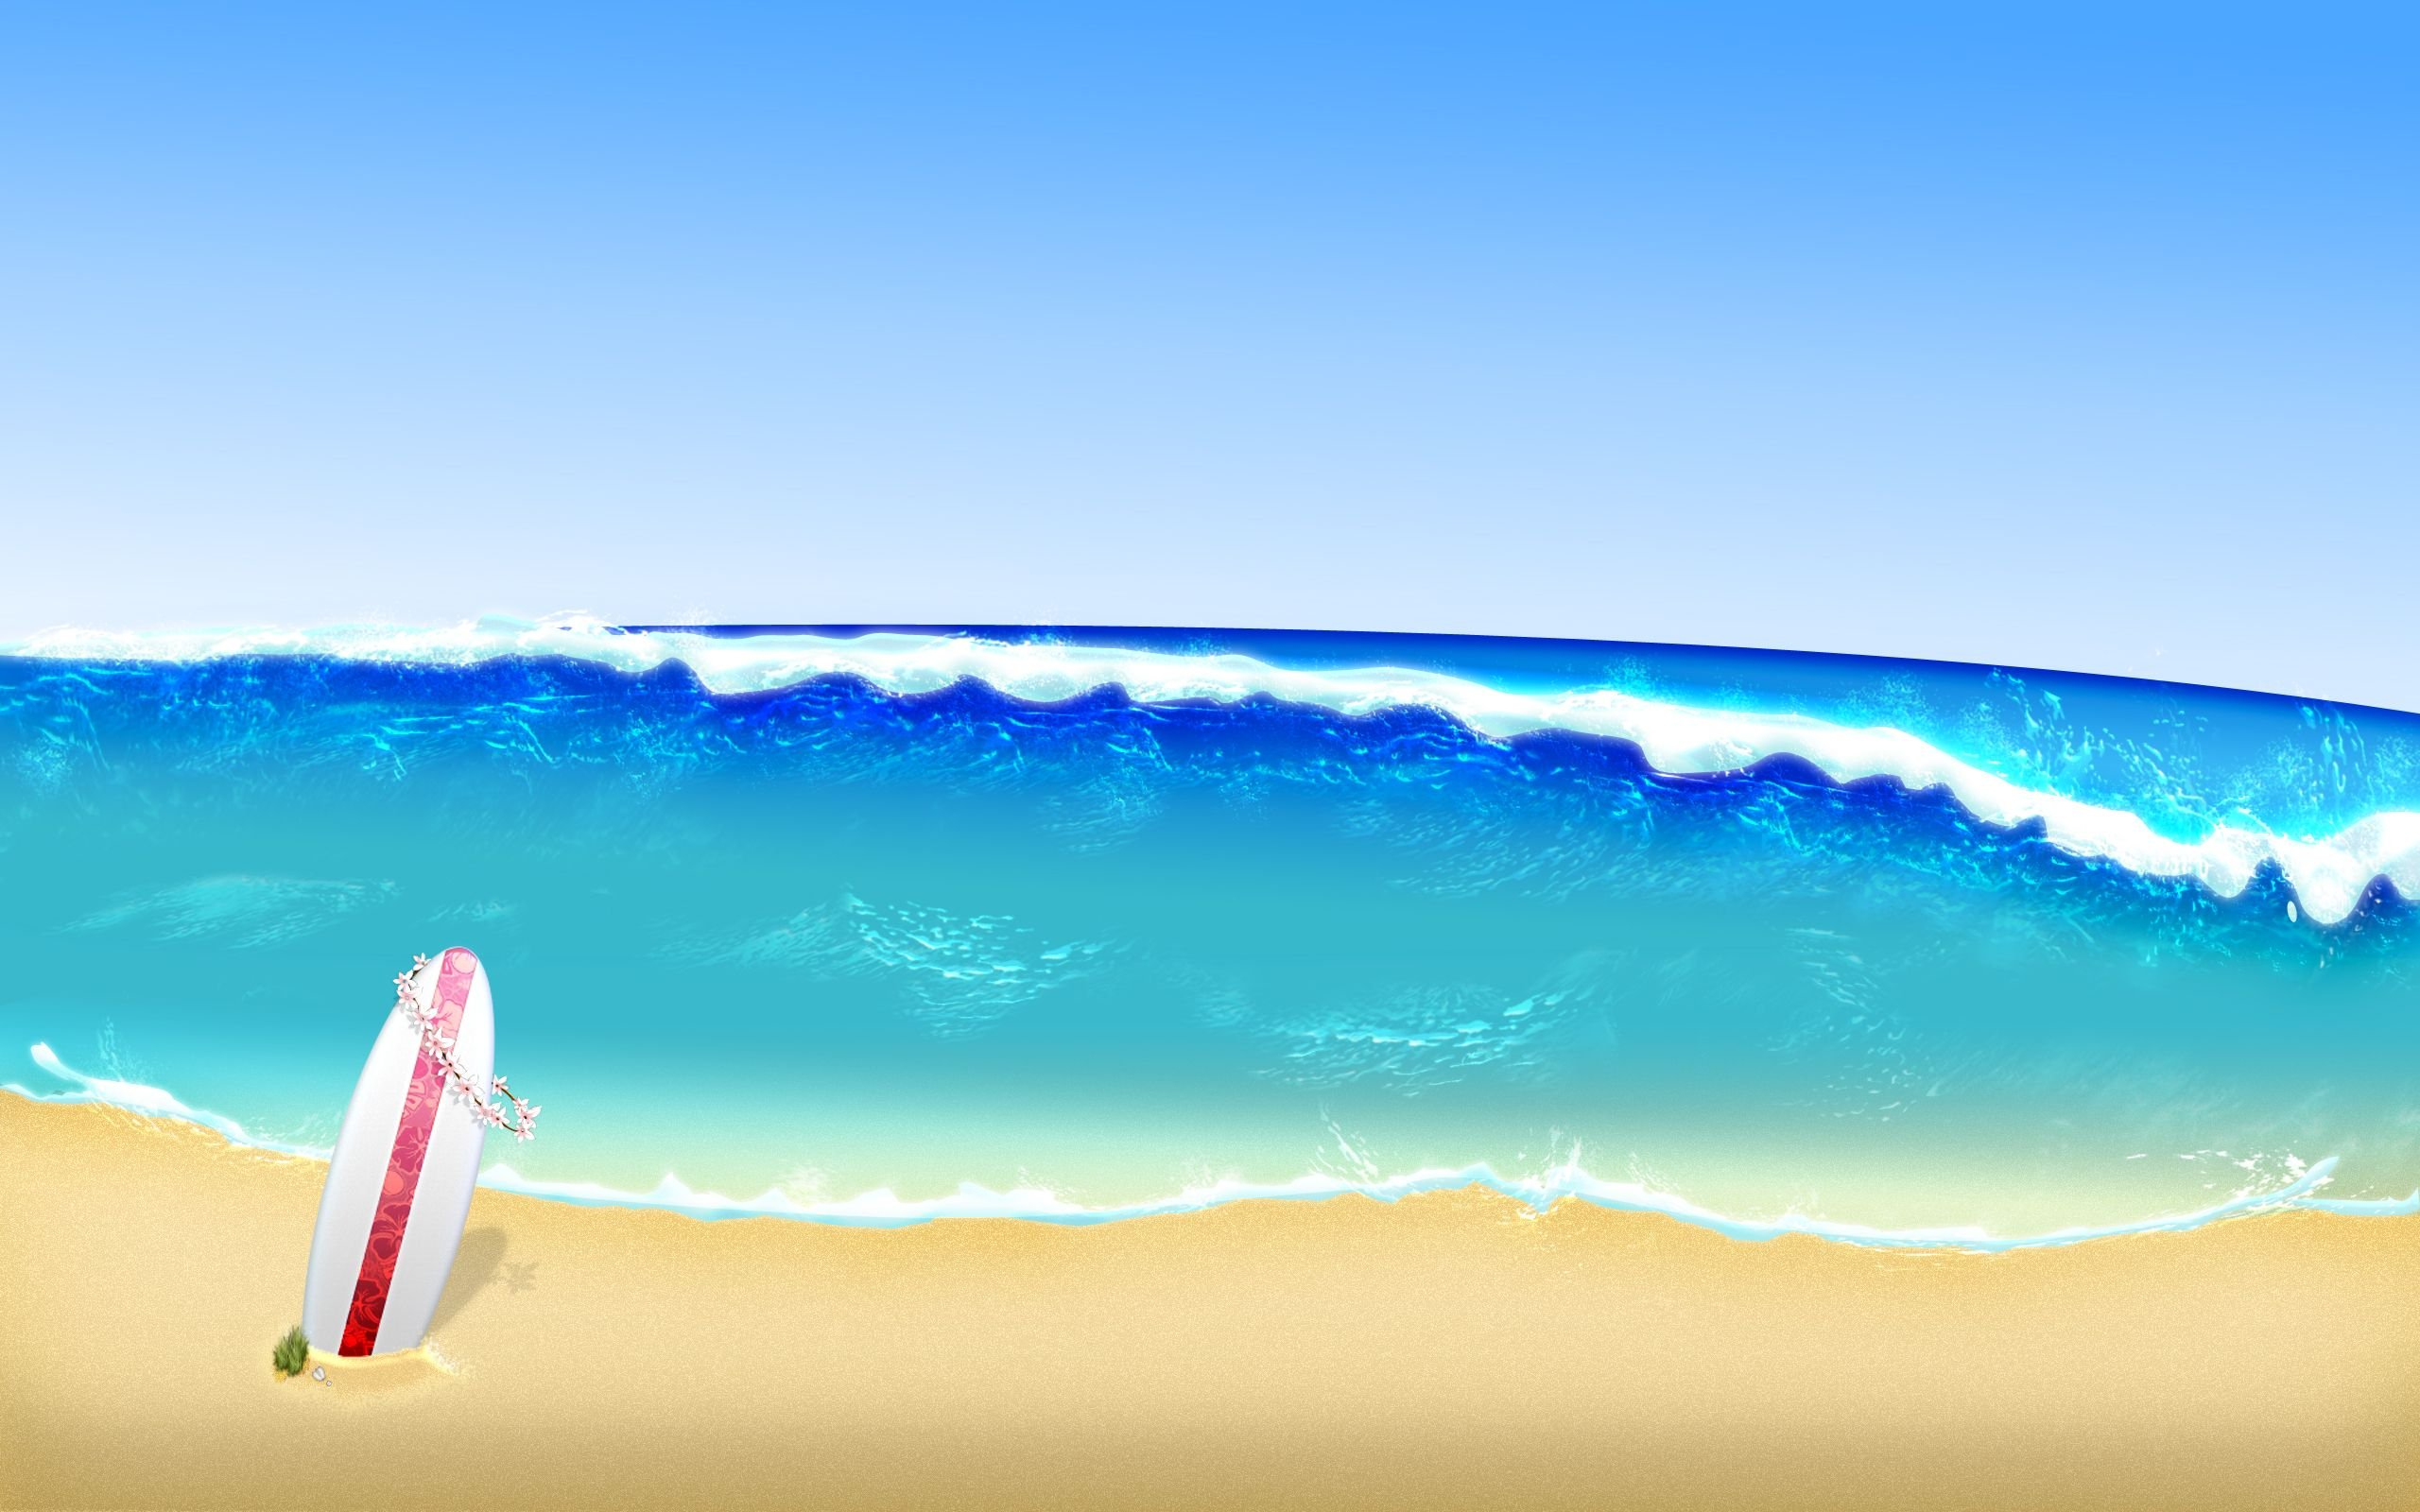 moving beach backgrounds for wallpaper - photo #30